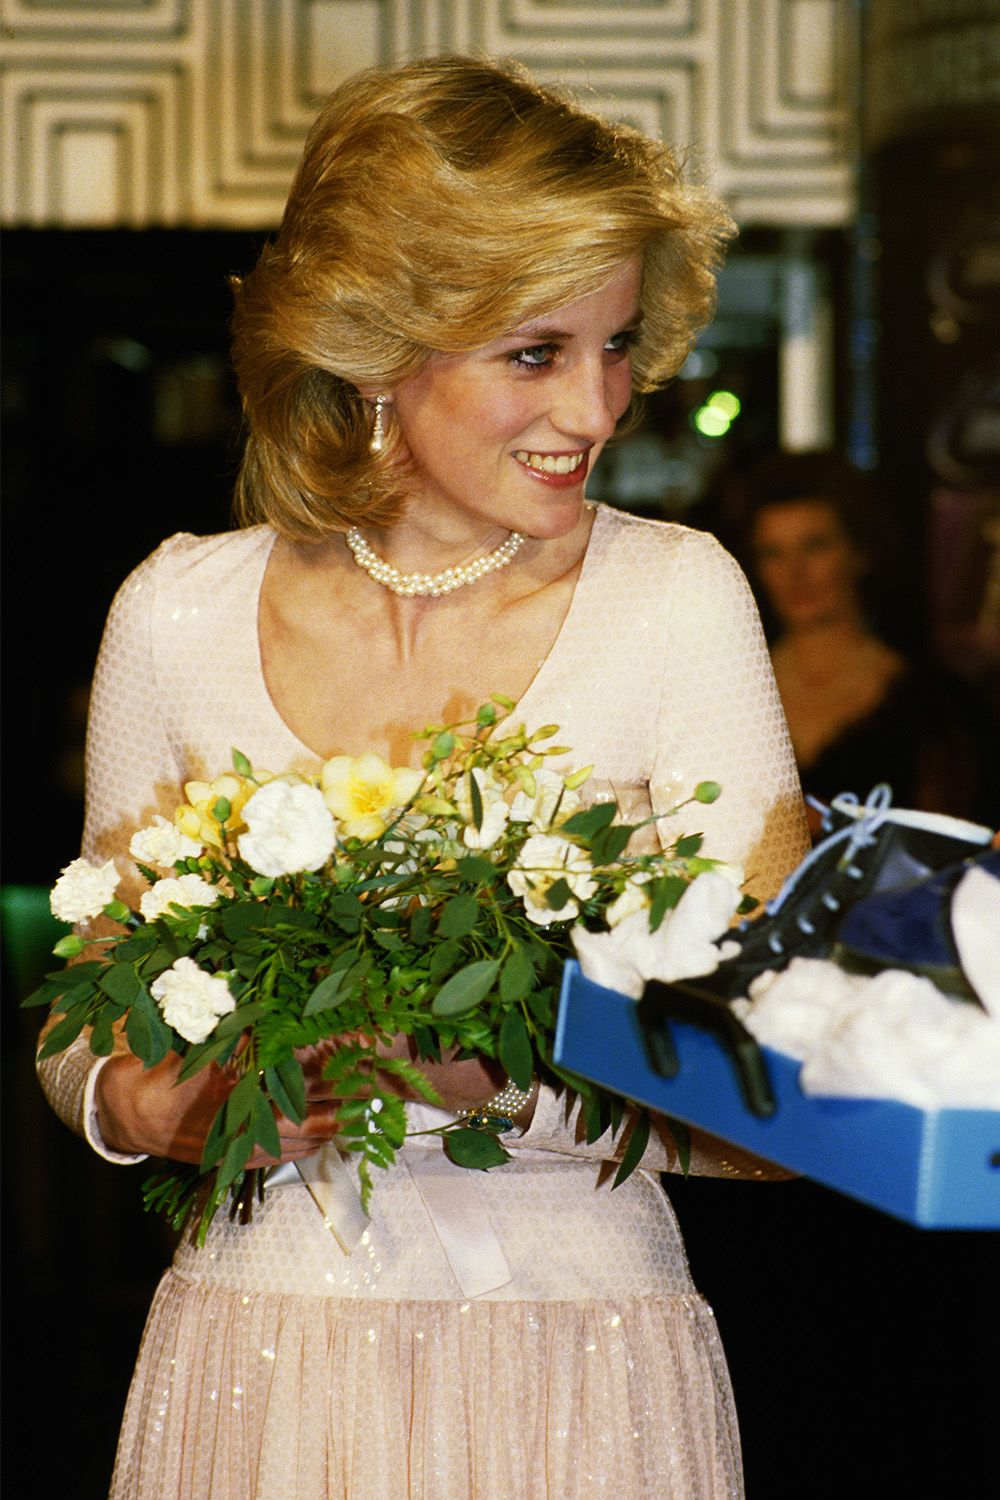 Hairstyles For Hair Growing Out Princess Diana Hairstyles And Cut Princess Diana Hair